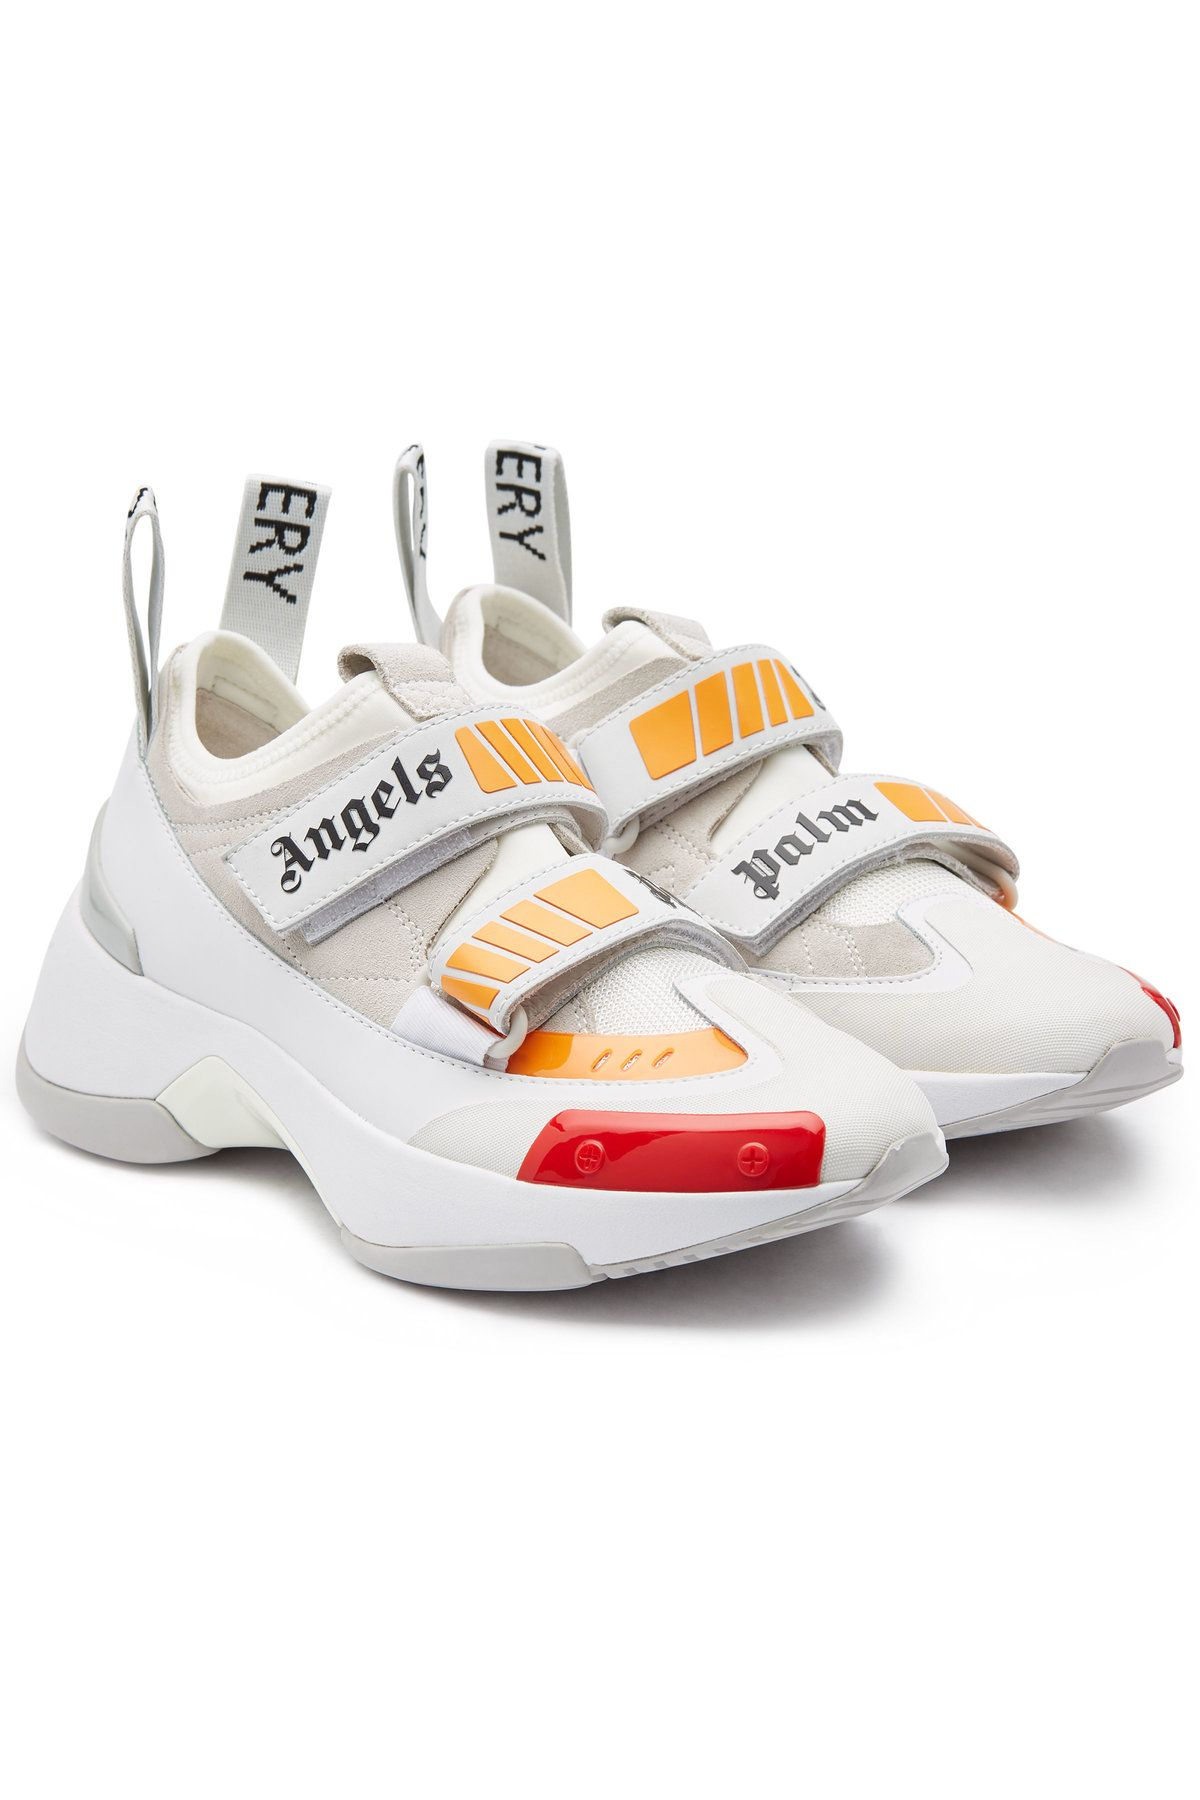 PALM ANGELS RECOVERY SNEAKERS WITH SUEDE AND MESH